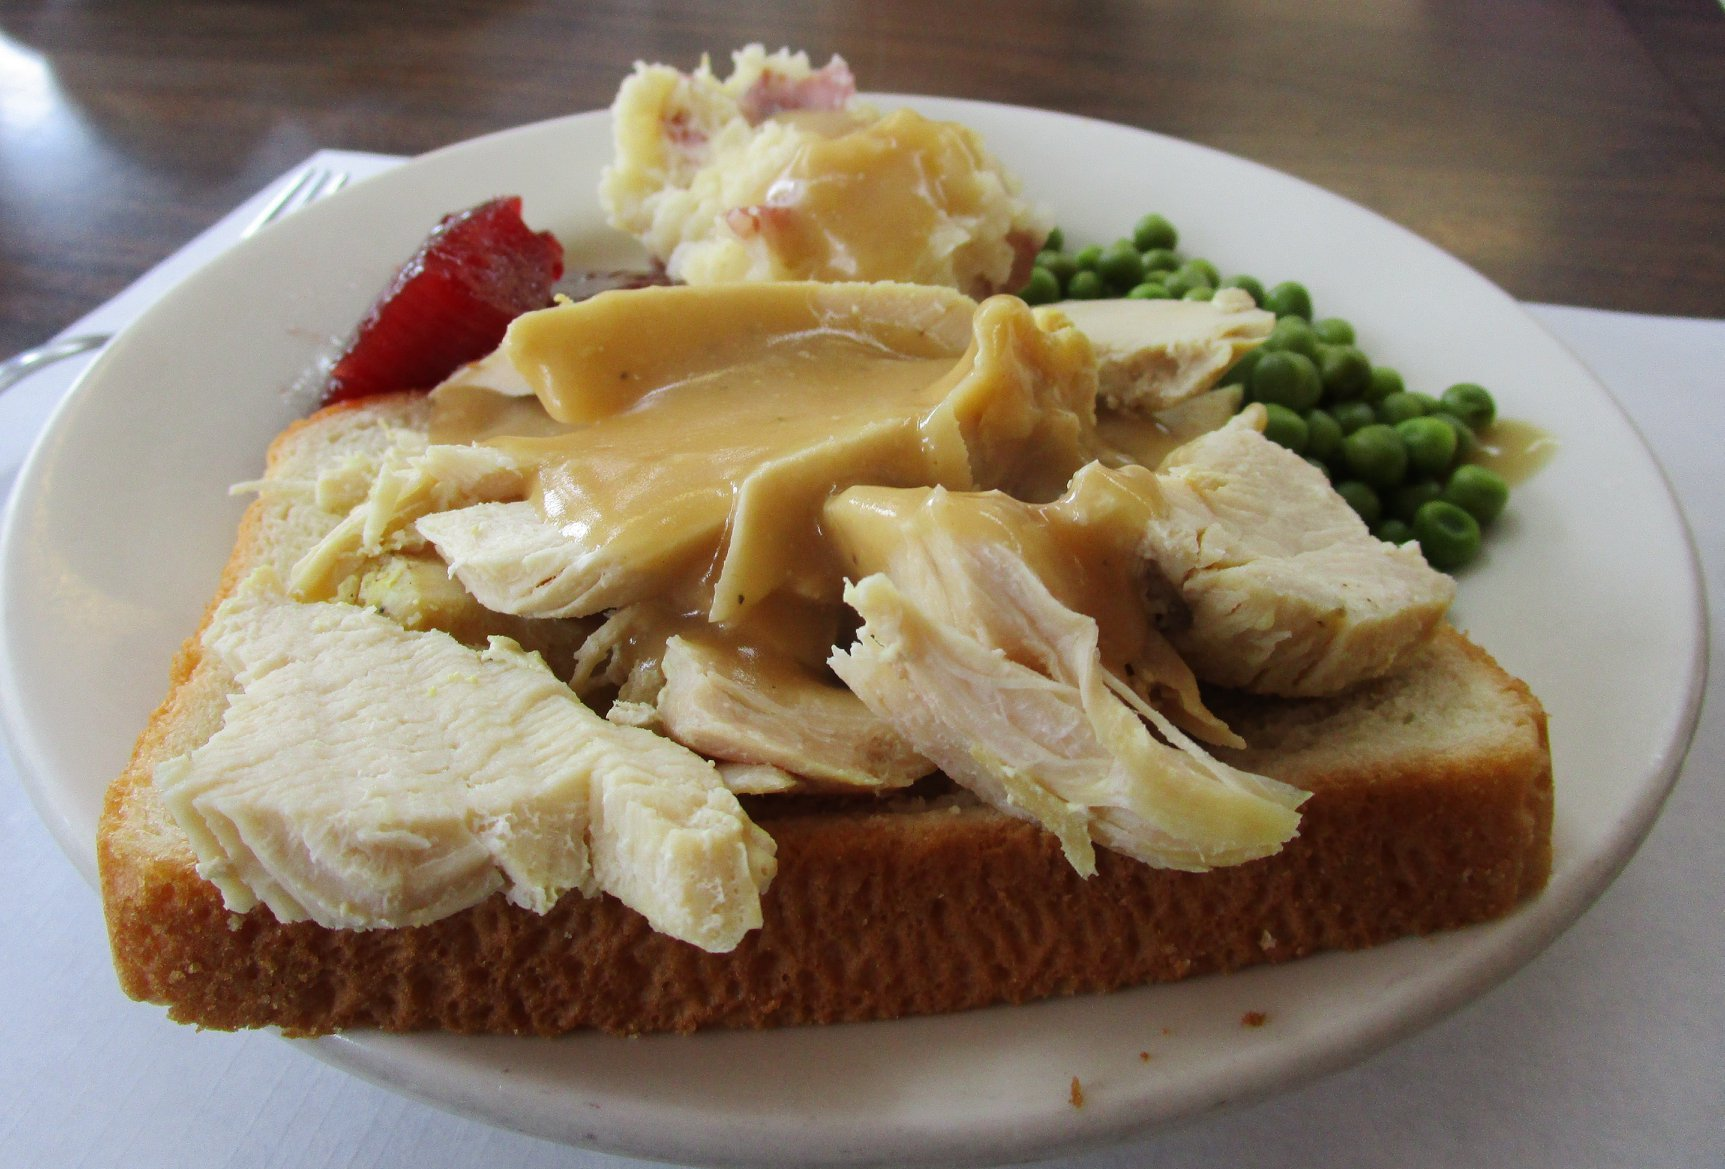 bread topped with turkey, turkey is covered in gravy with a side of english peas and mashed potatoes